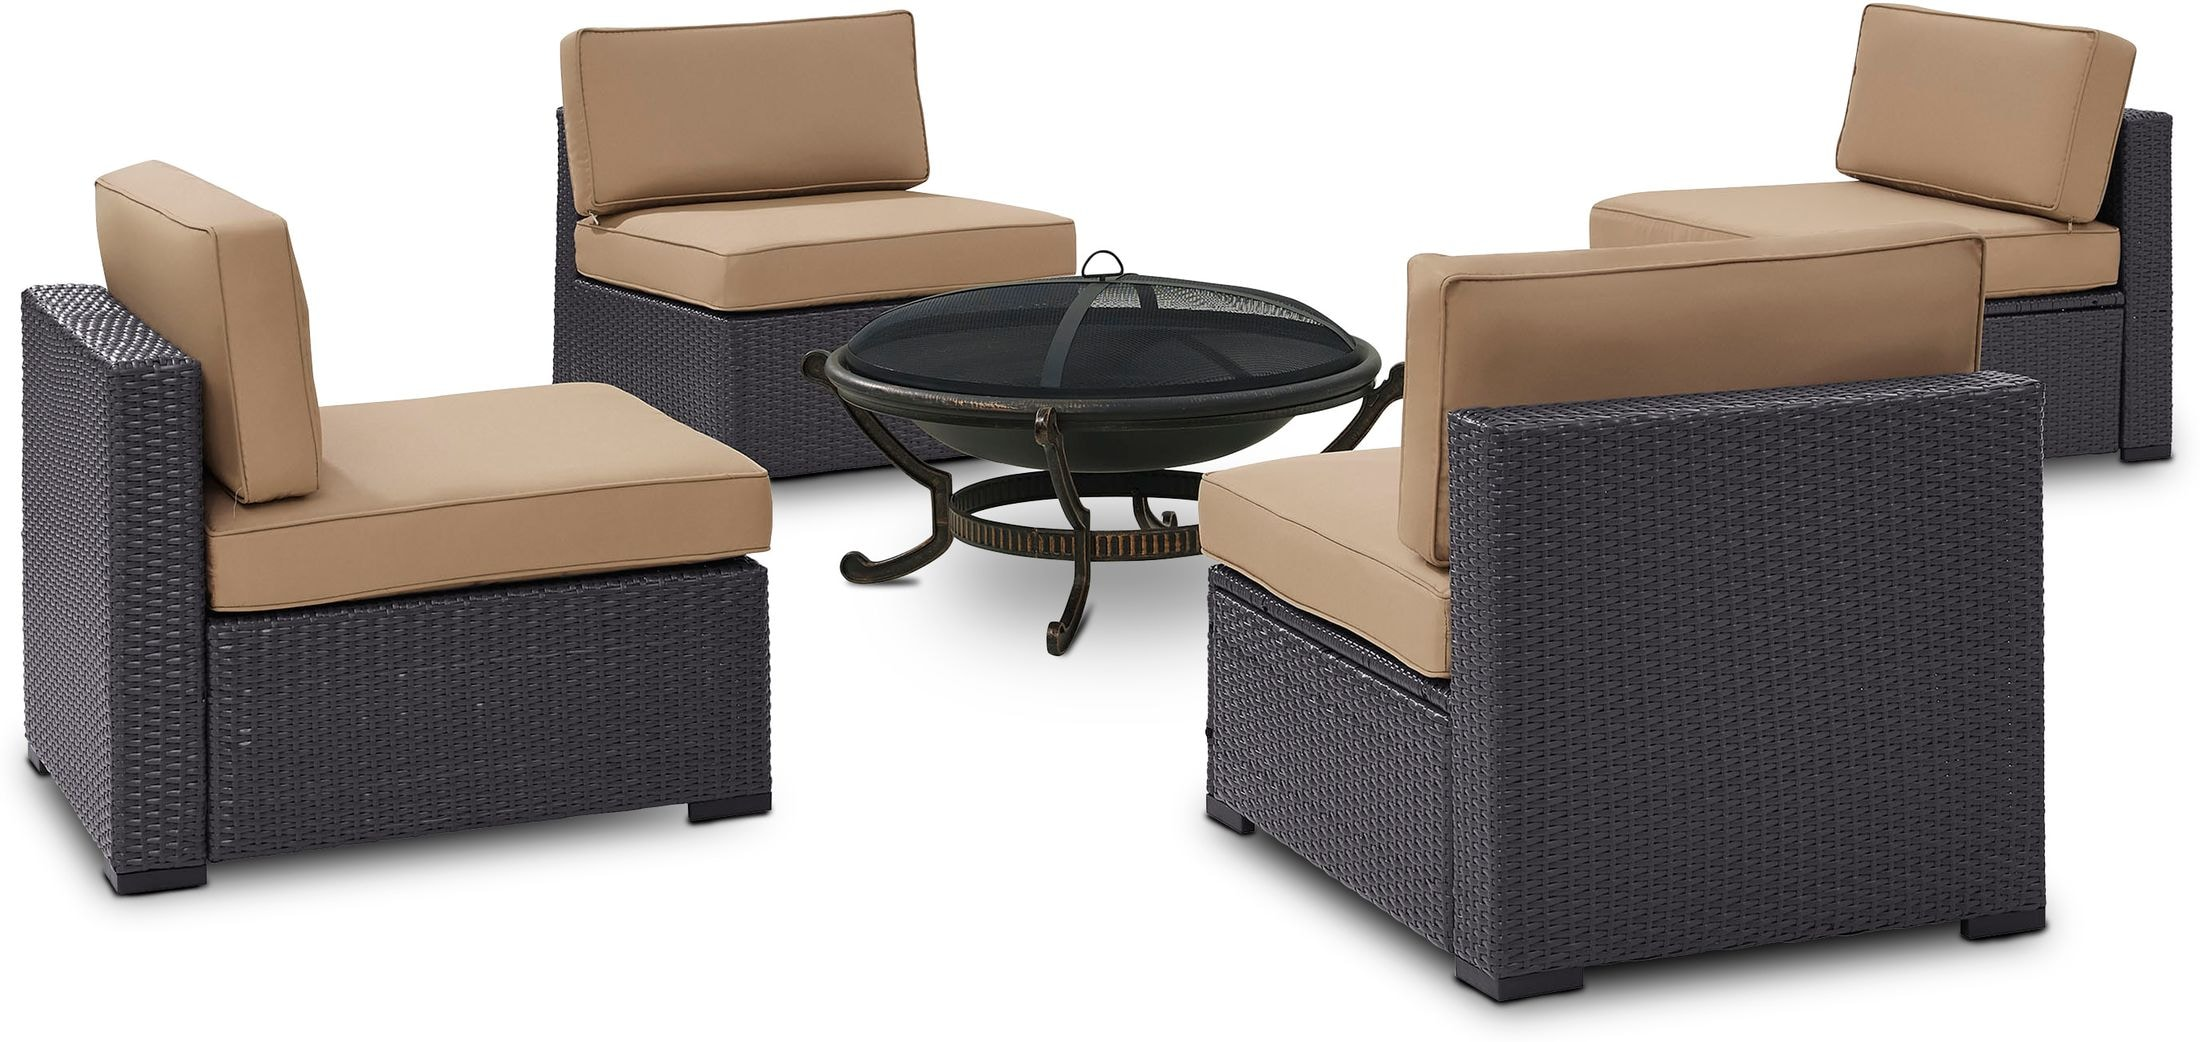 Outdoor Furniture - Isla Set of 4 Outdoor Armless Chairs and Fire Pit